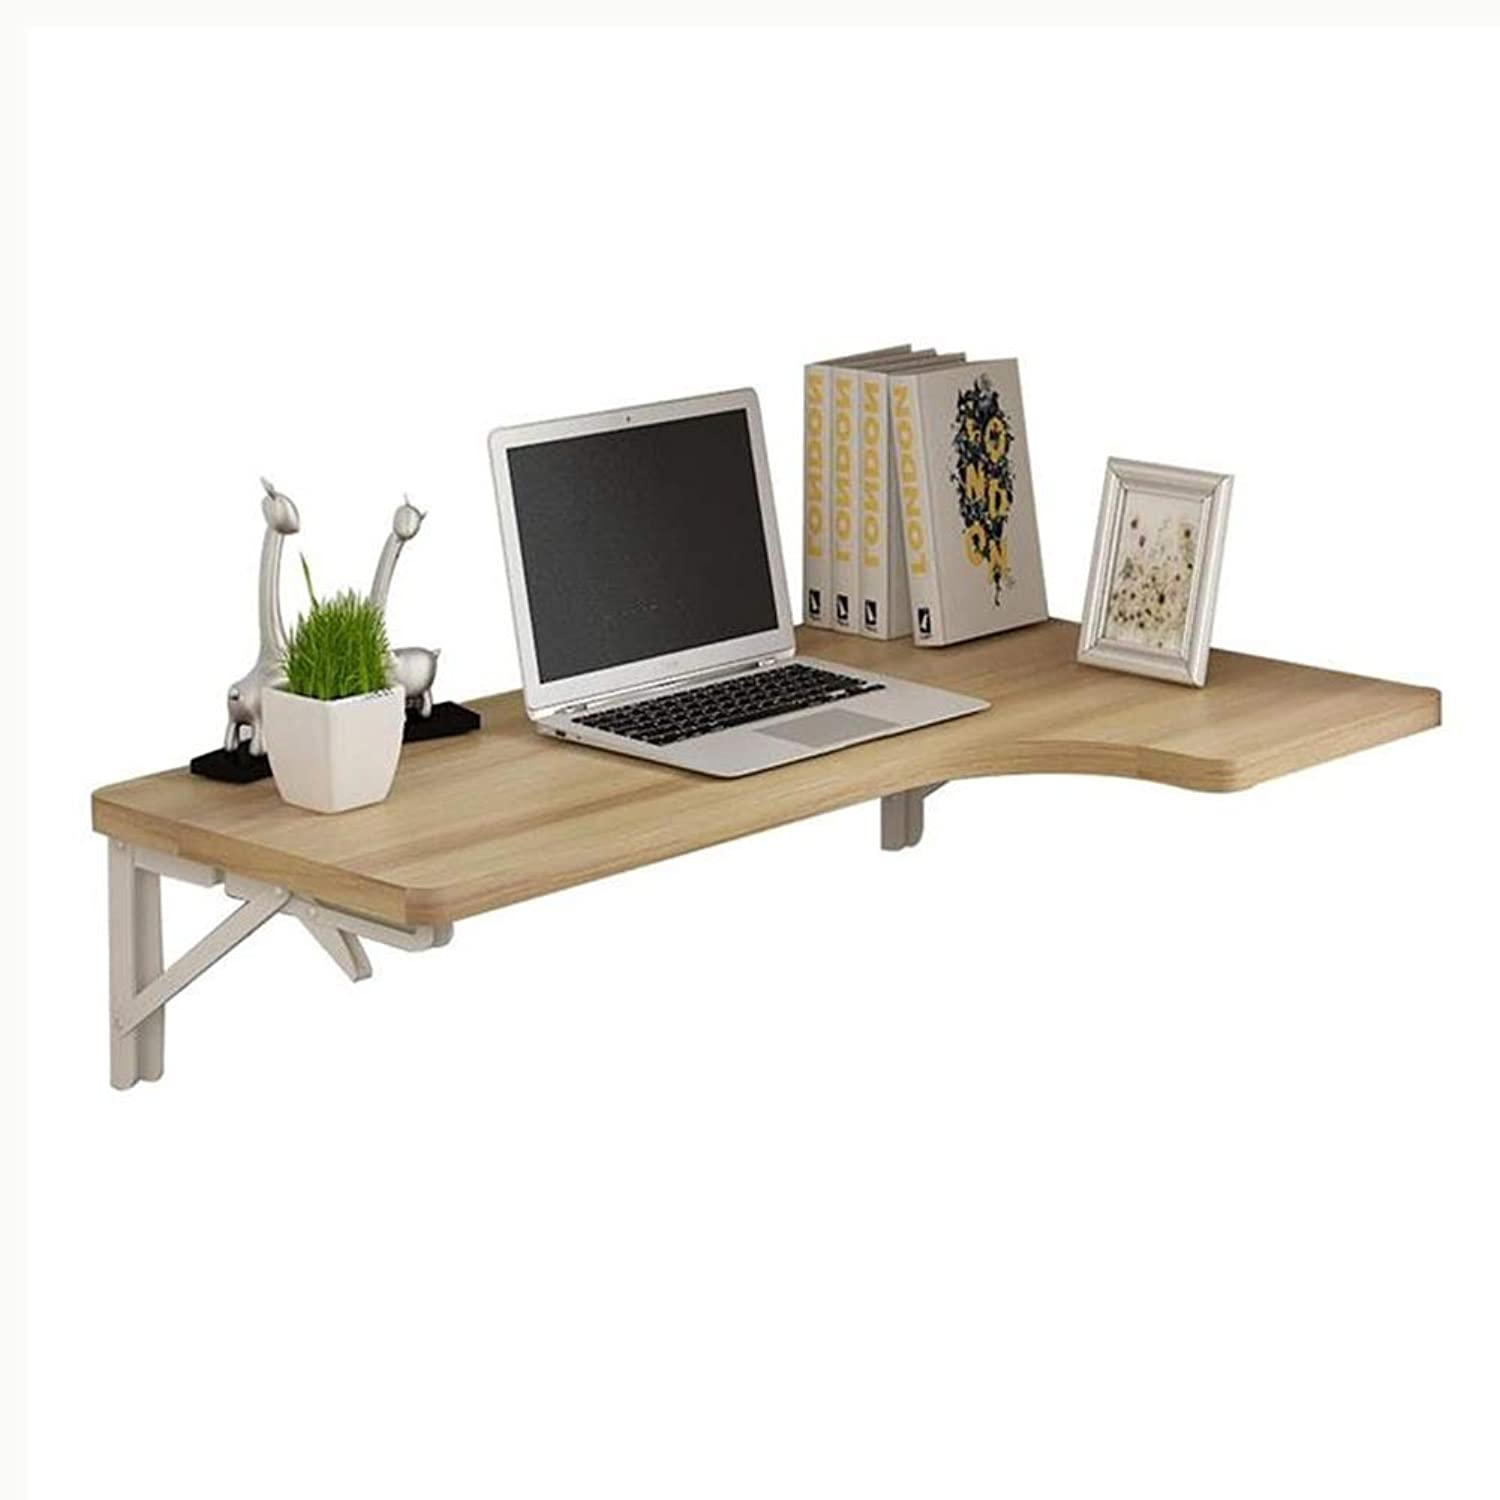 PENGFEI Wall-Mounted Table Laptop Stand Foldable Corner Desk Laptop Stand Wood-Based Panels, 3 colors, 4 Sizes (color   A, Size   80X60cm)